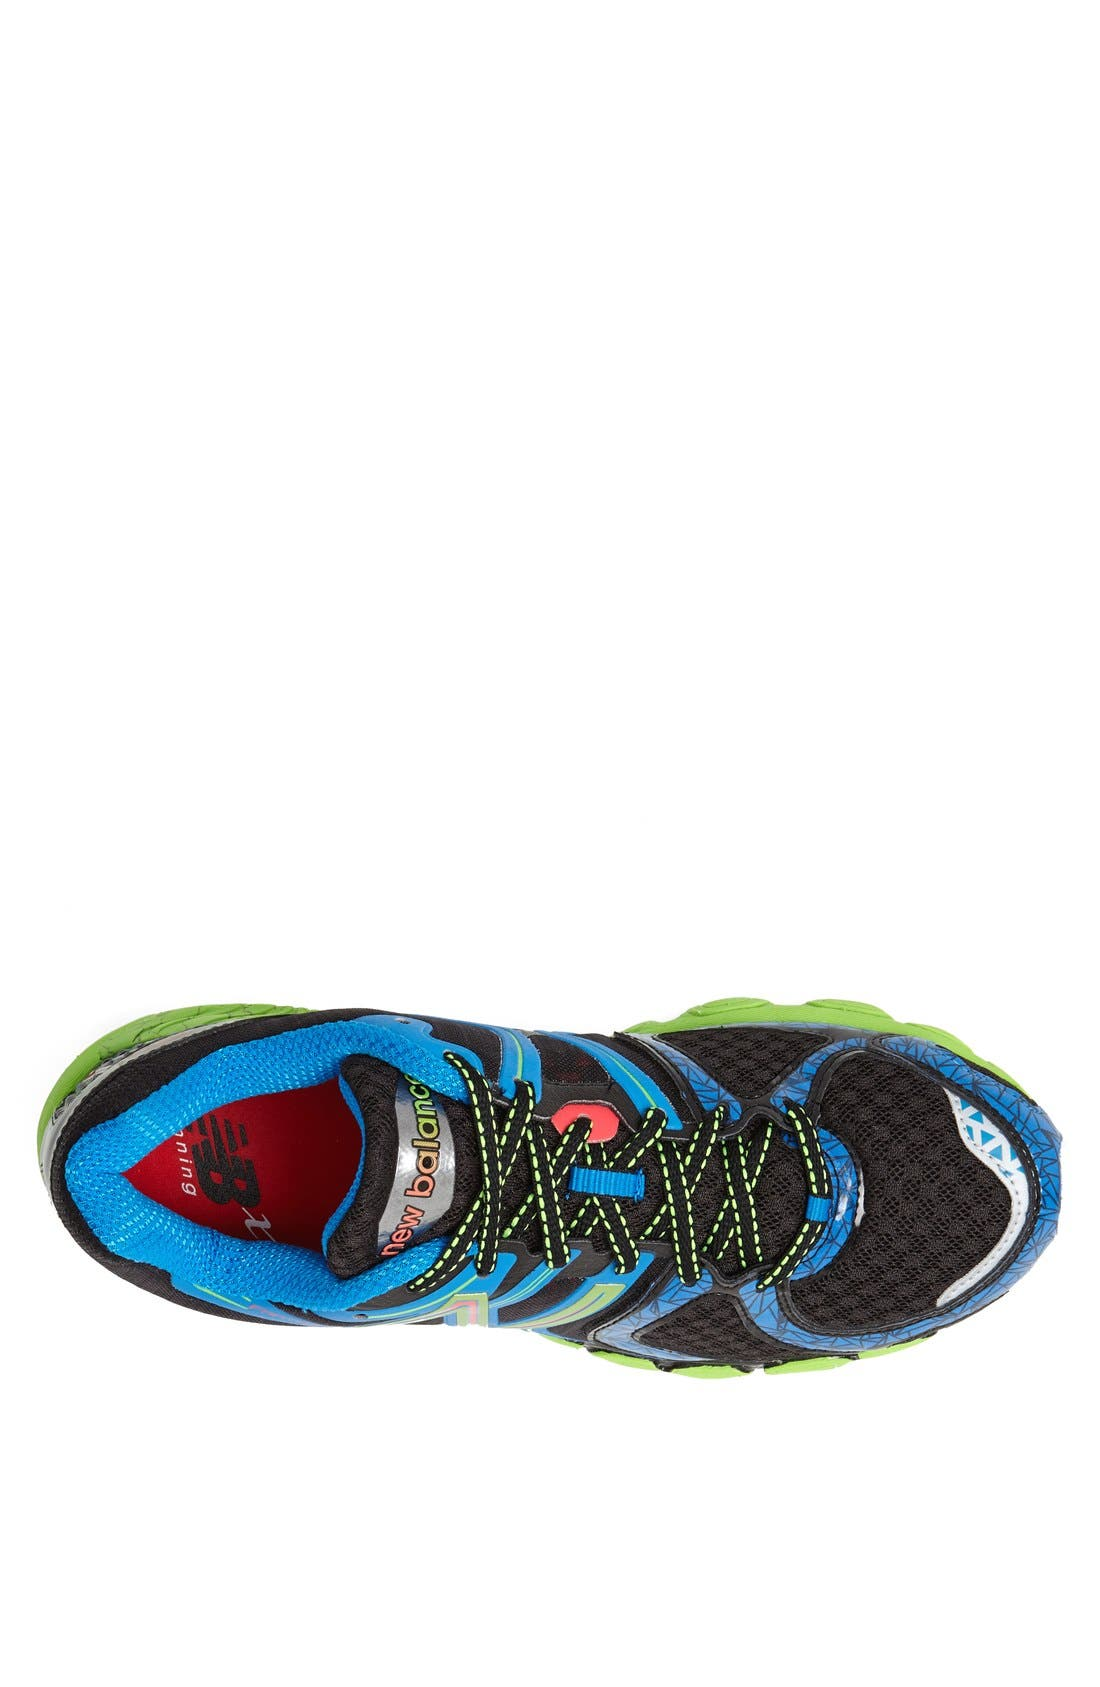 Alternate Image 3  - New Balance '1260v3' Running Shoe (Men)